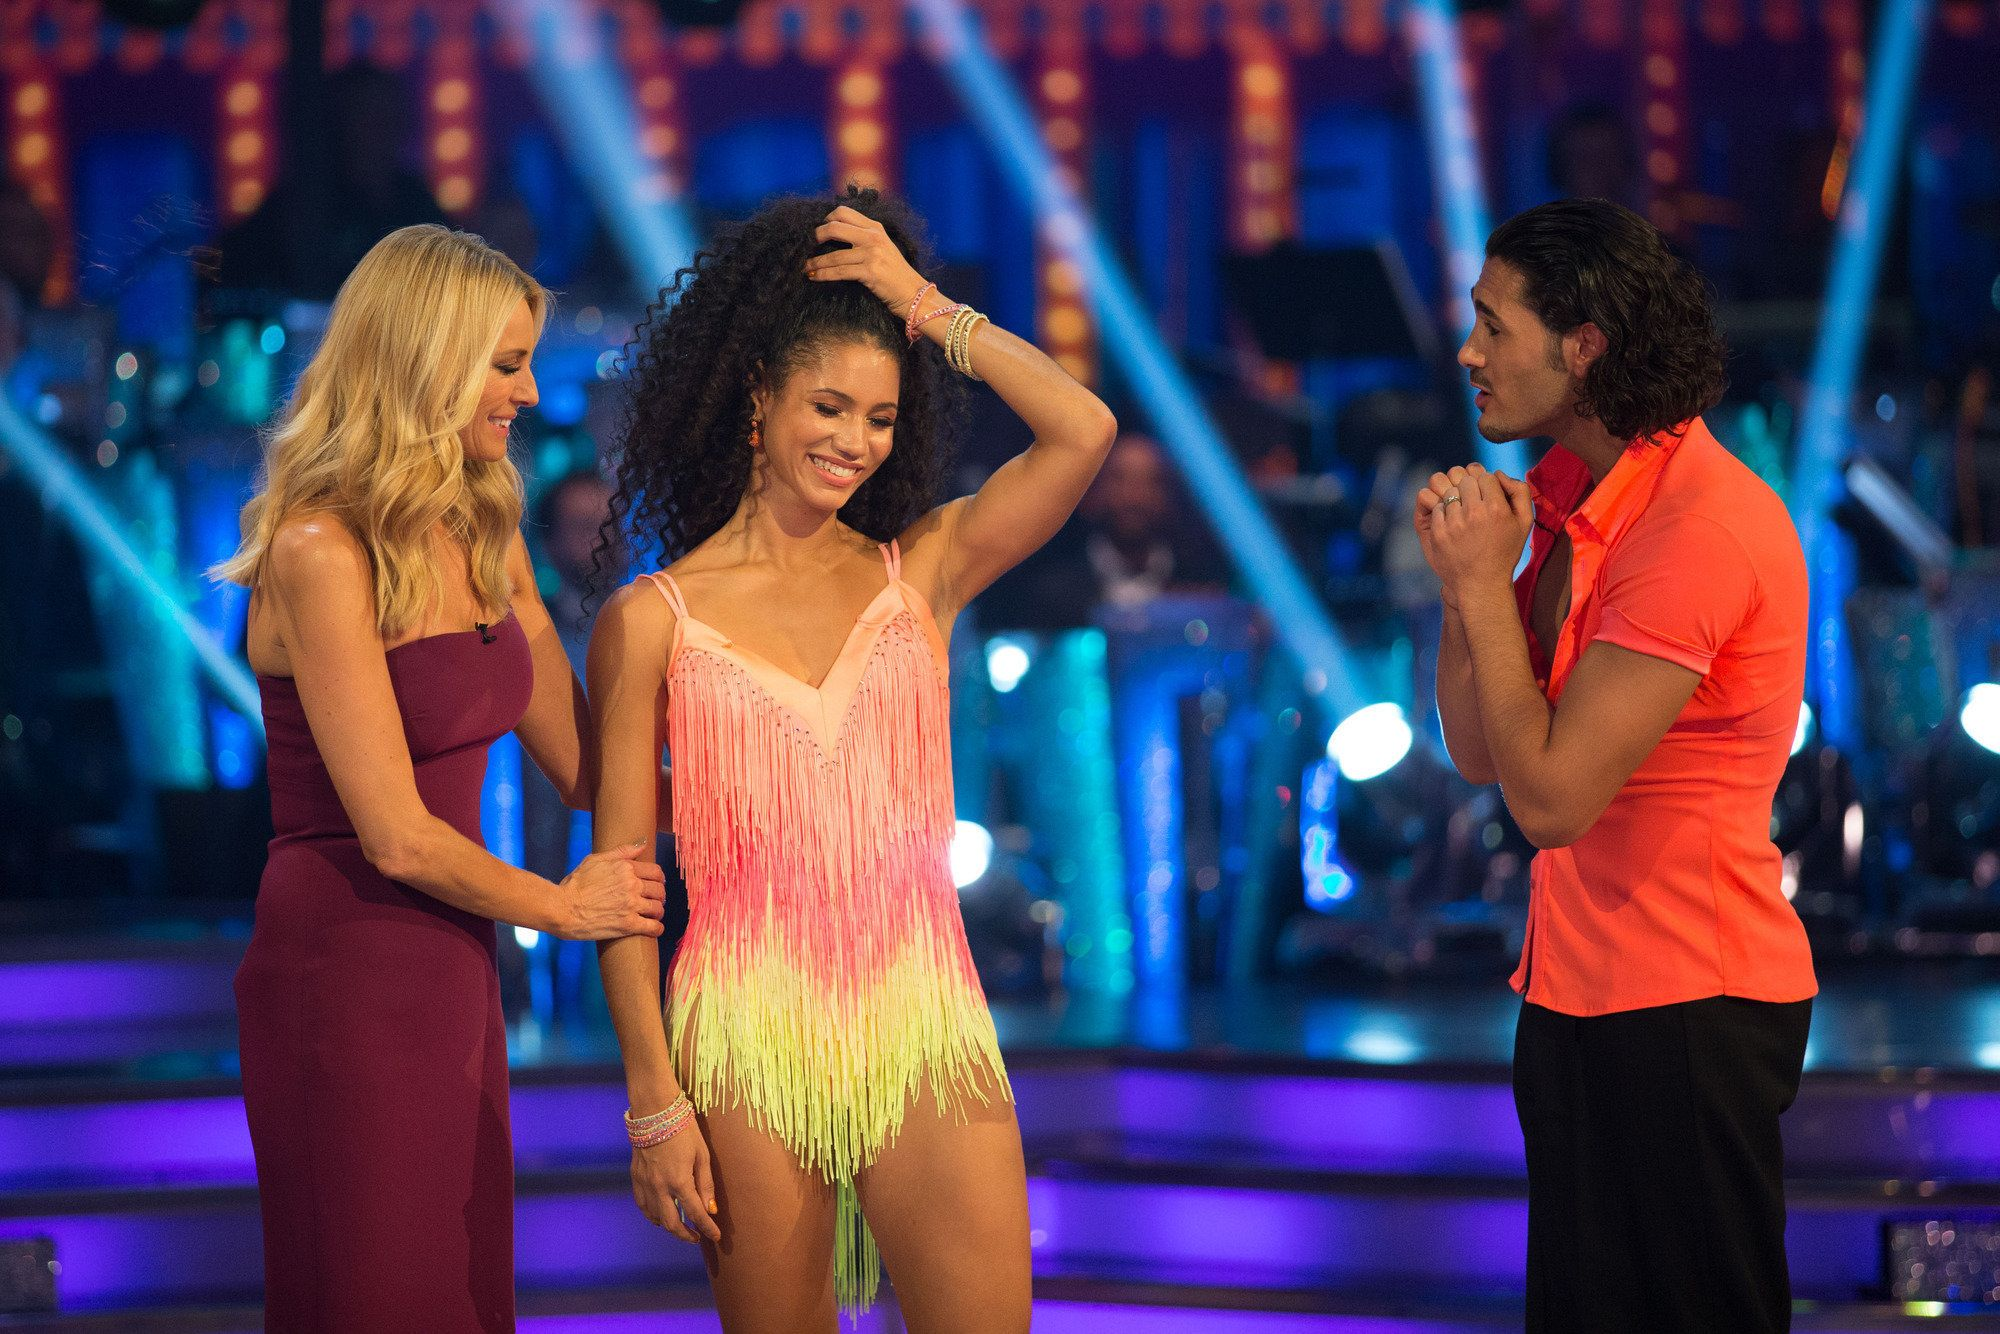 Eliminated Vick Hope Hints 'Strictly' Producers Were Involved In Decision To Save Seann Walsh In